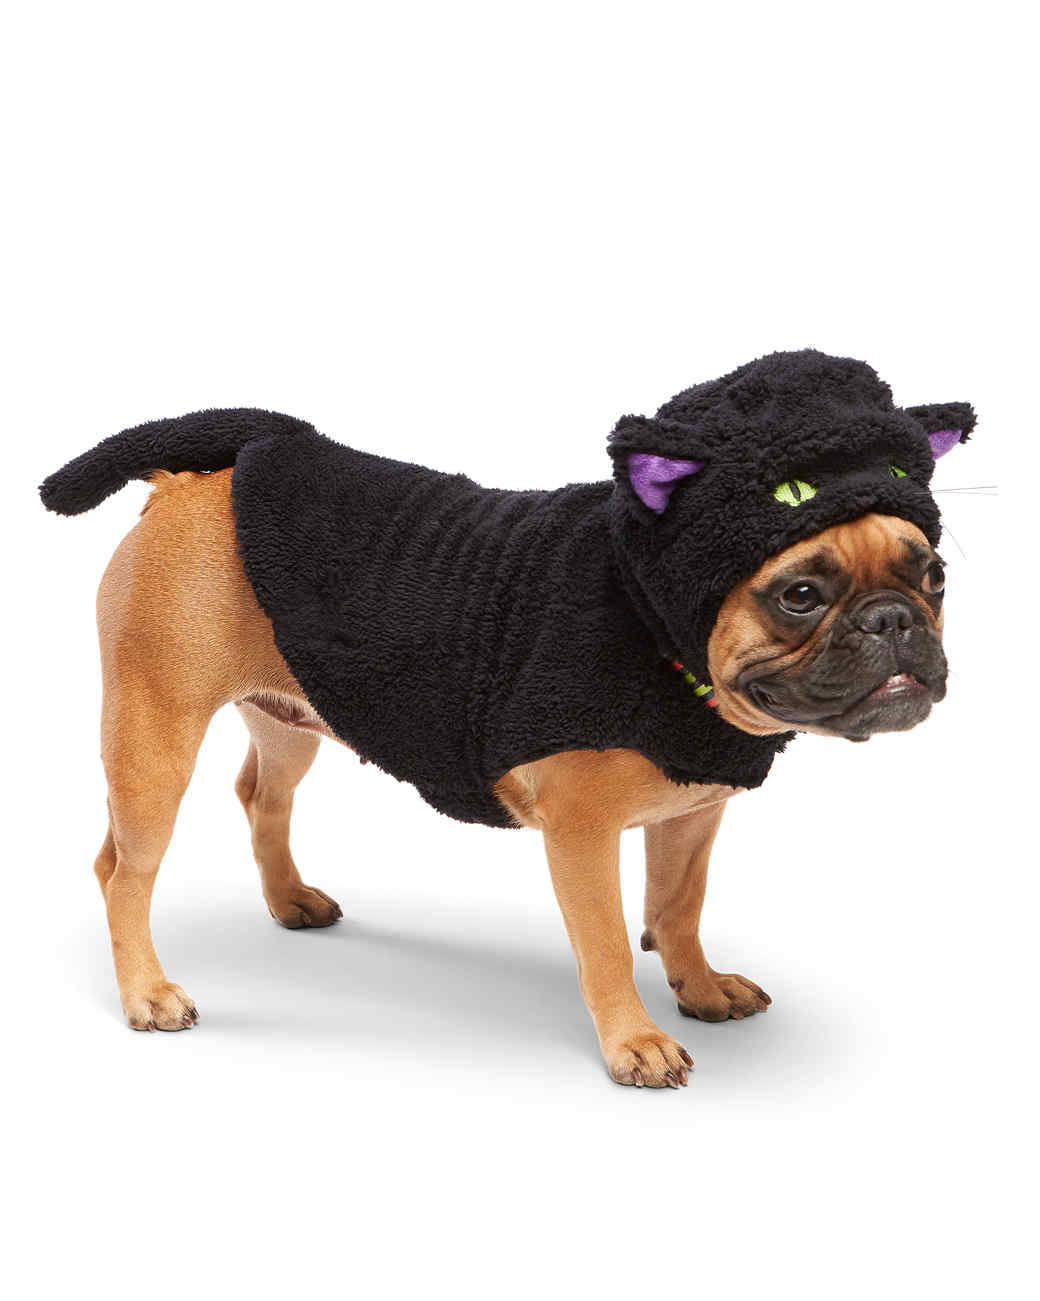 mspets-dog-halloween-blackcat-mrkt-0915.jpg